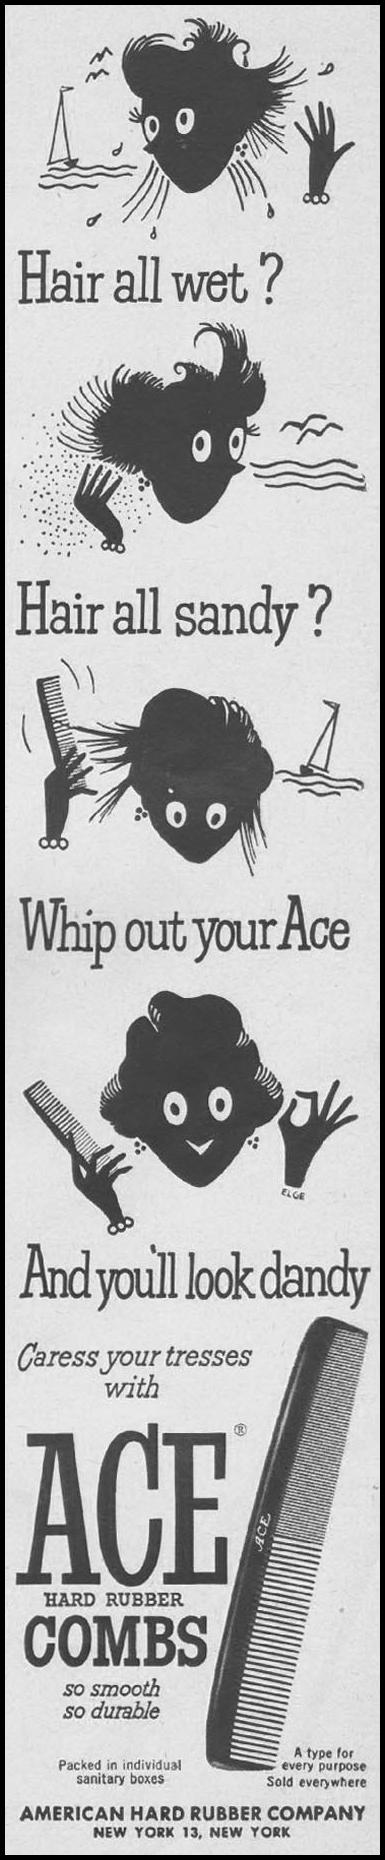 ACE HARD RUBBER COMBS LIFE 07/02/1951 p. 59